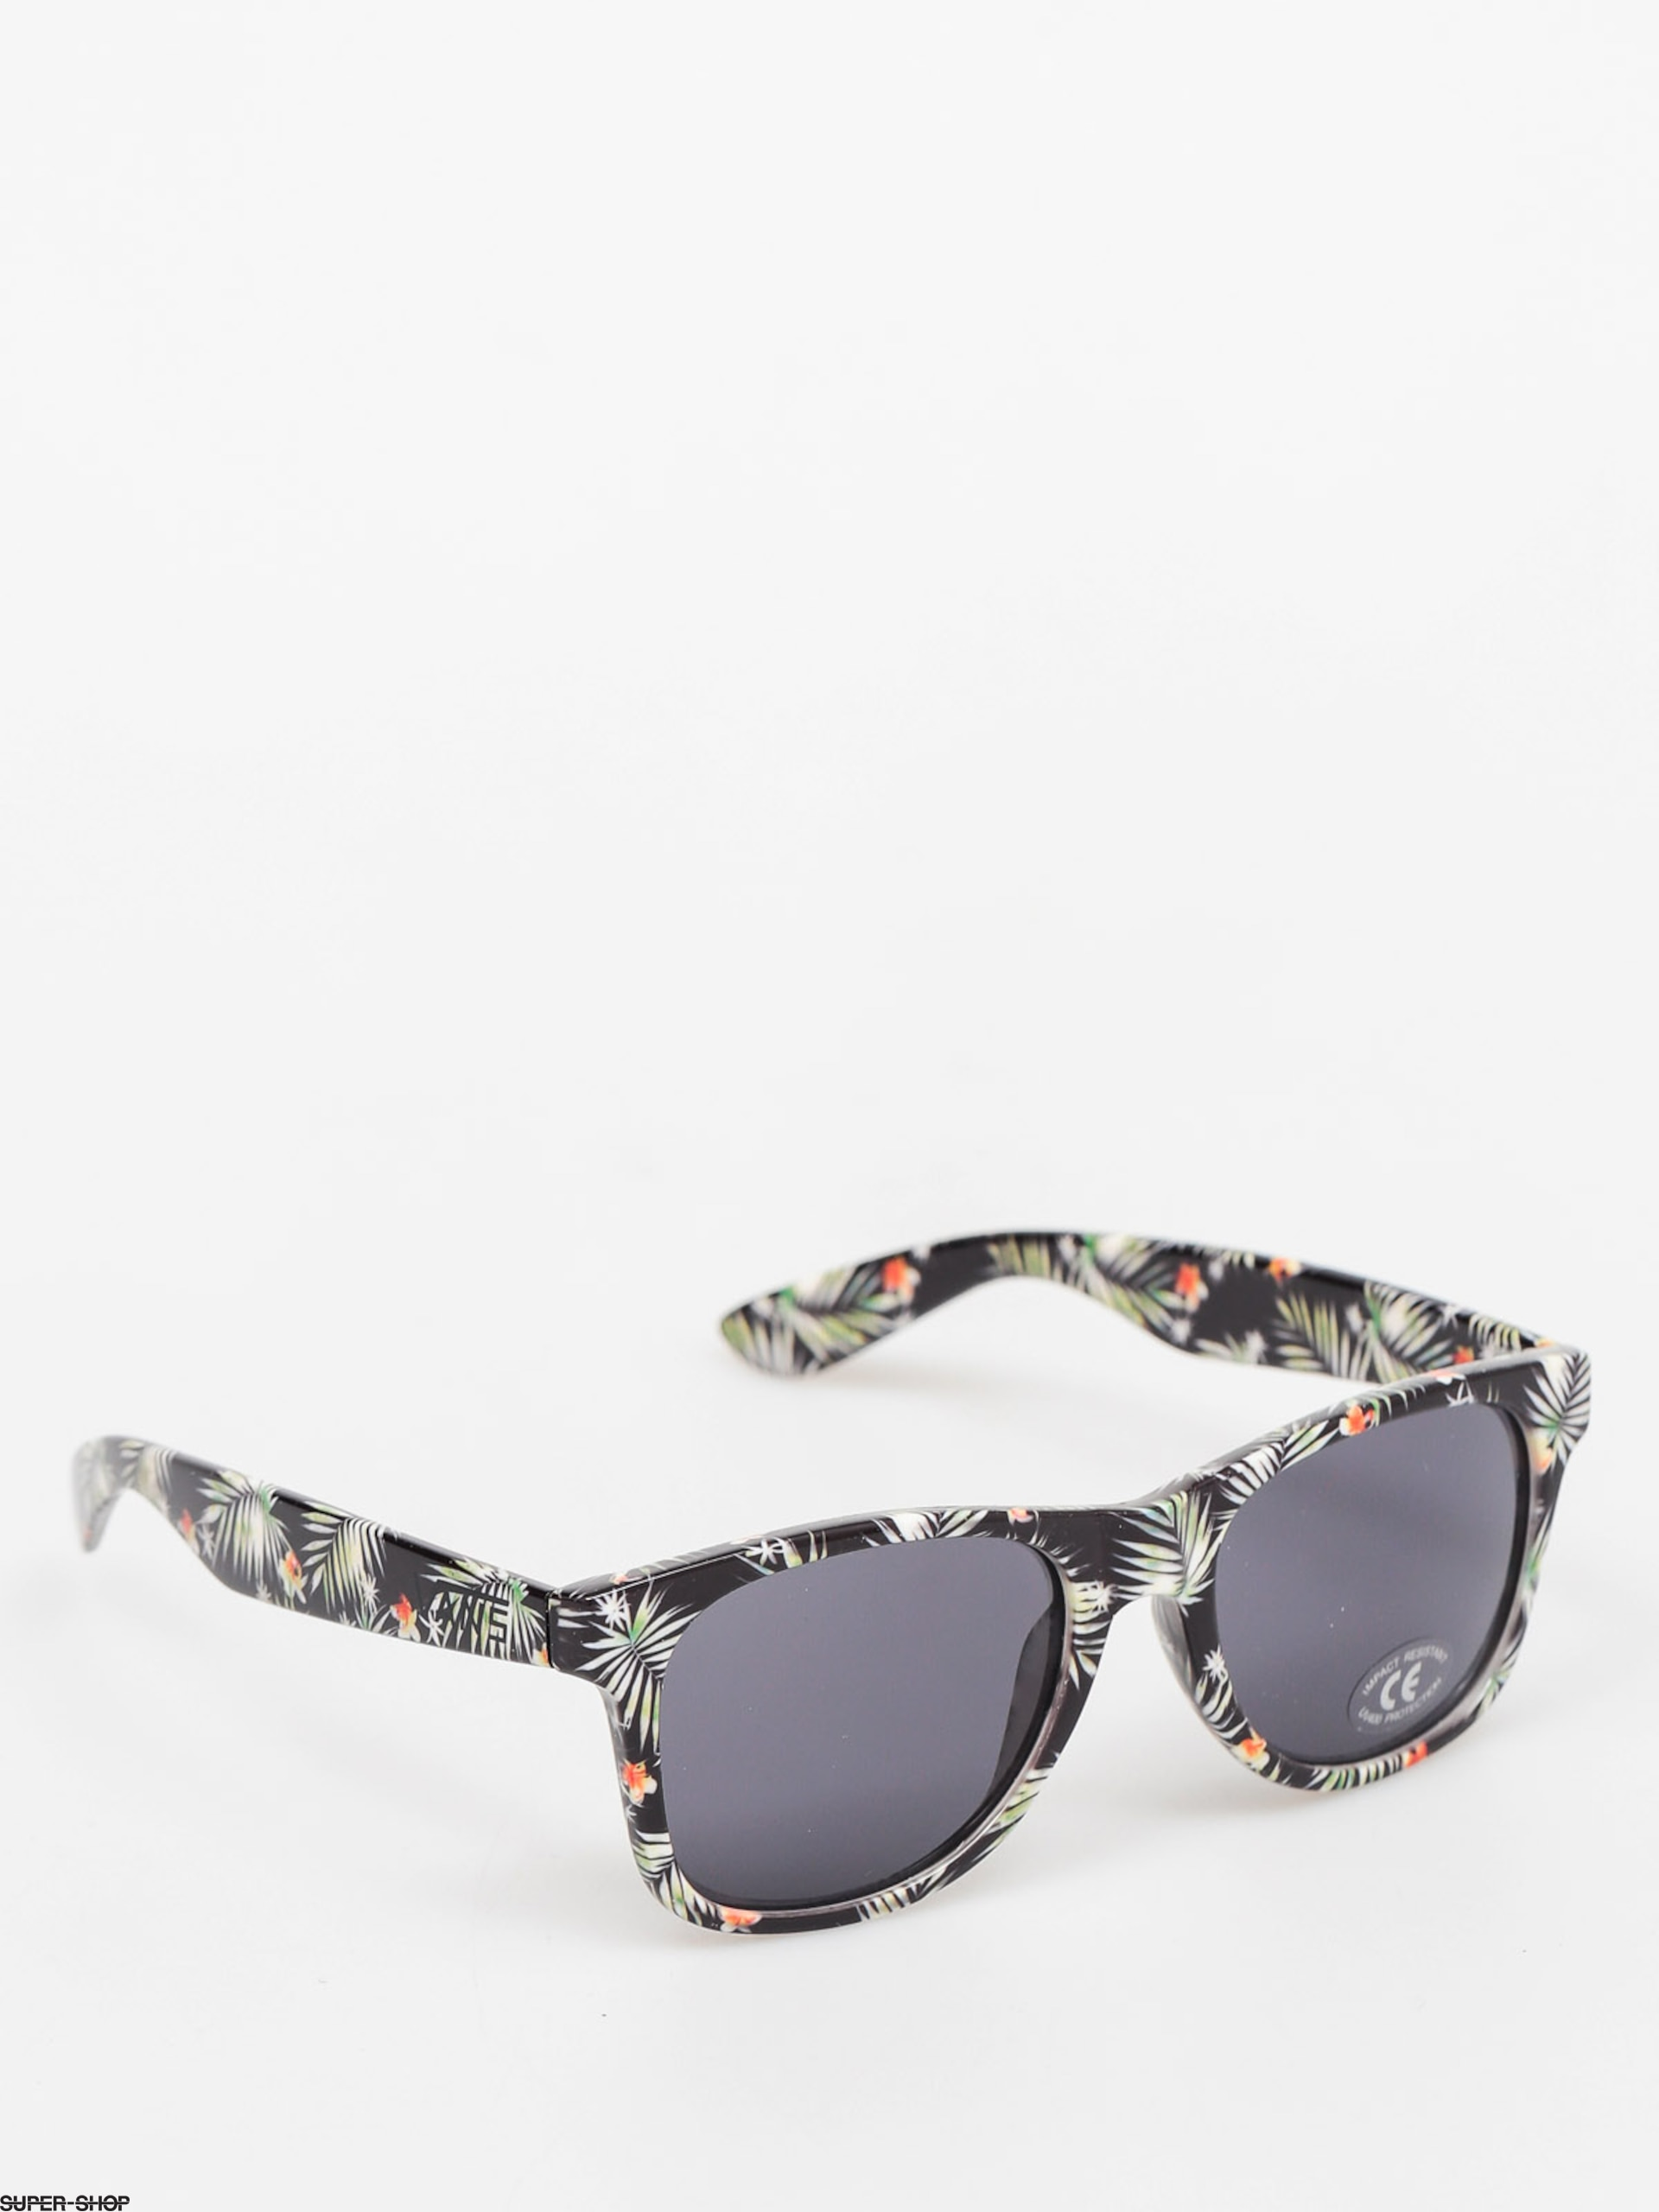 Vans Sunglasses Spicoli 4 Shades (black decay palm)